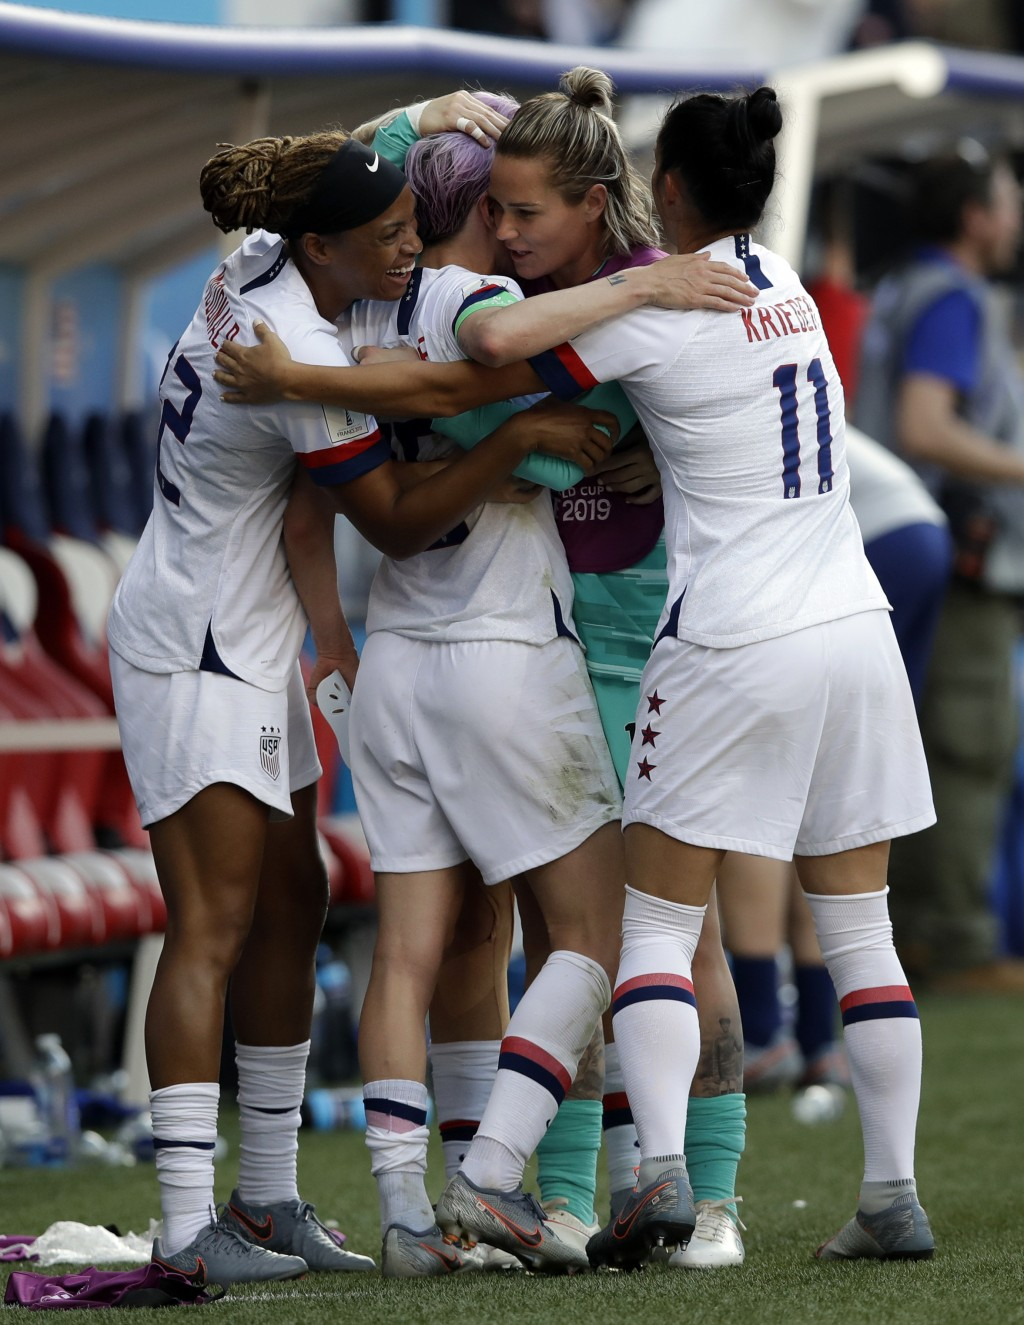 United States players celebrates at the end of the Women's World Cup round of 16 soccer match between Spain and US at the Stade Auguste-Delaune in Rei...